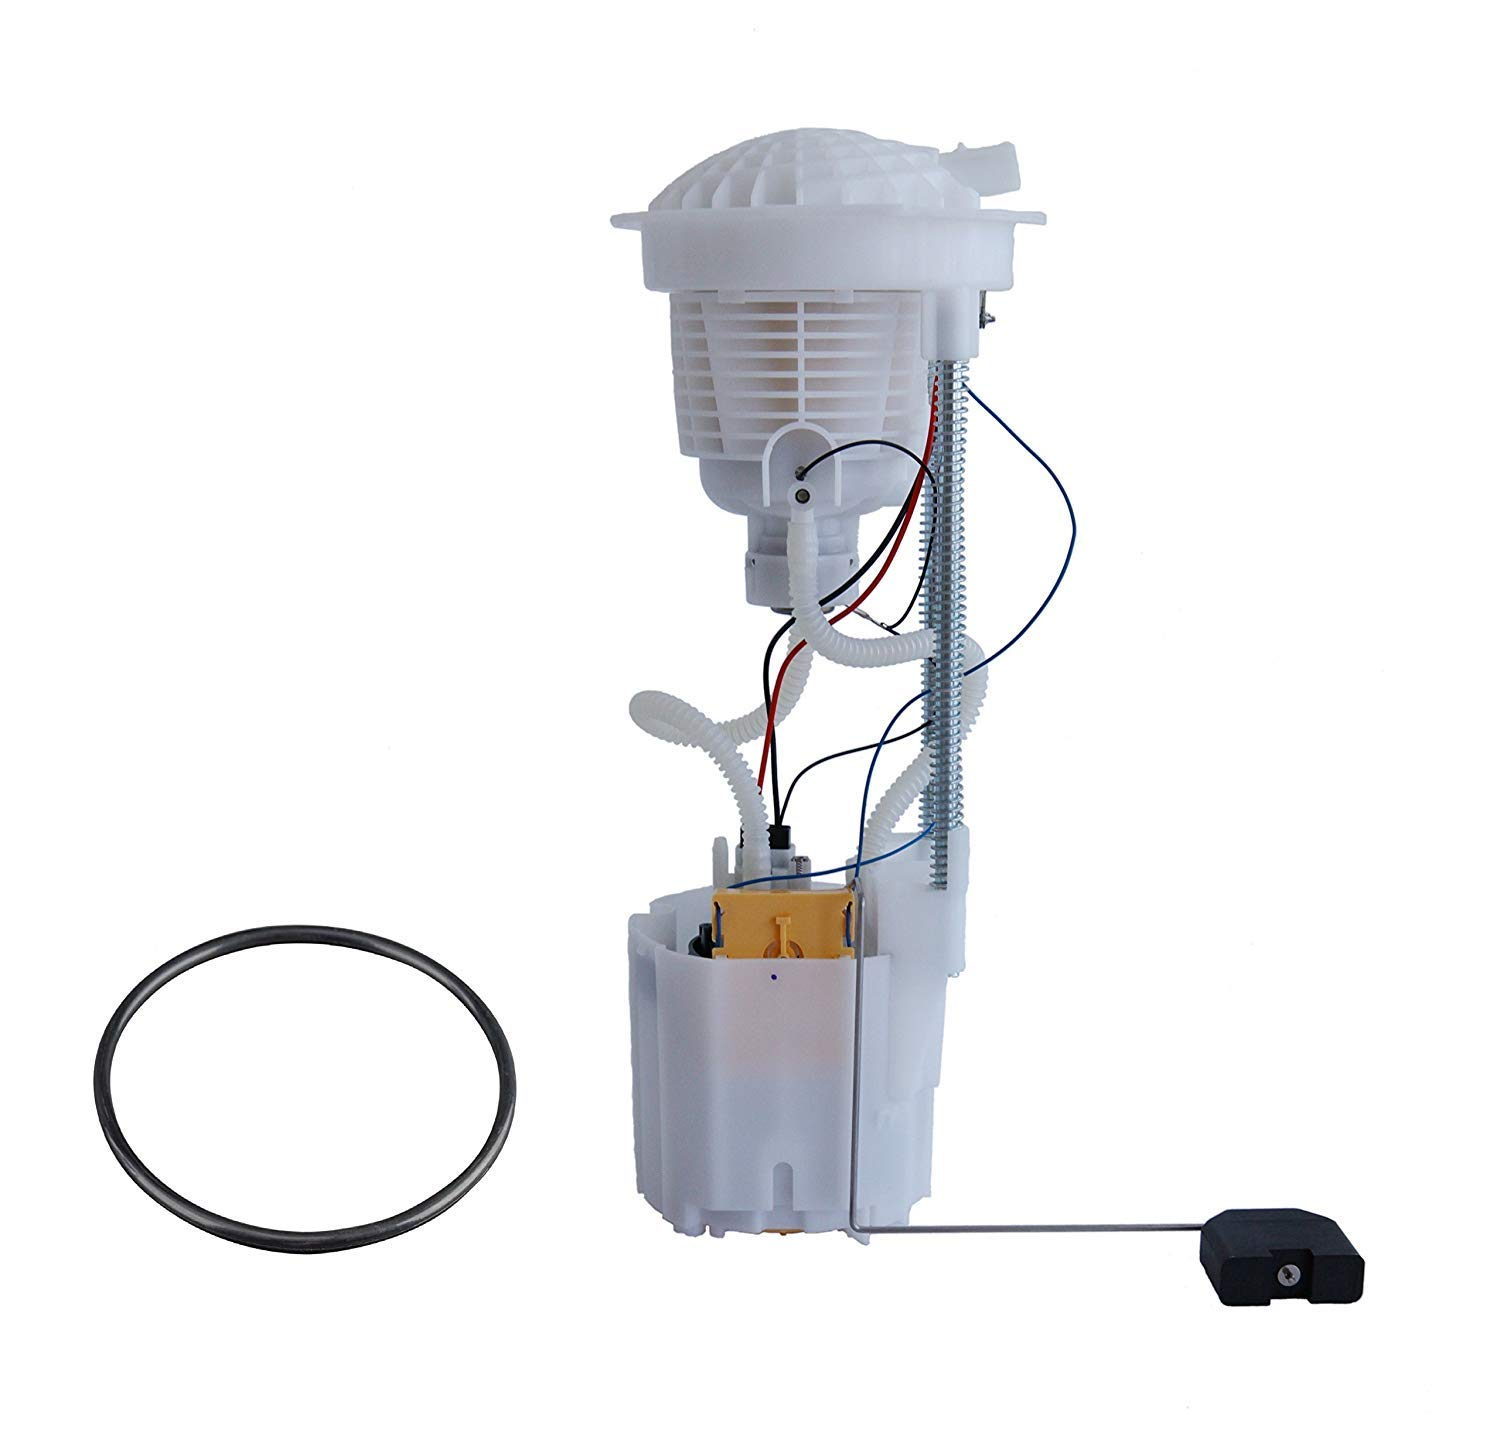 Amazon.com: TOPSCOPE FP7186M-FBA1 - Fuel Pump Module Assembly for 2004 2005 2006 Dodge Ram 1500 Truck (Short Bed with 26 Gallon Tank) E7186M: Automotive